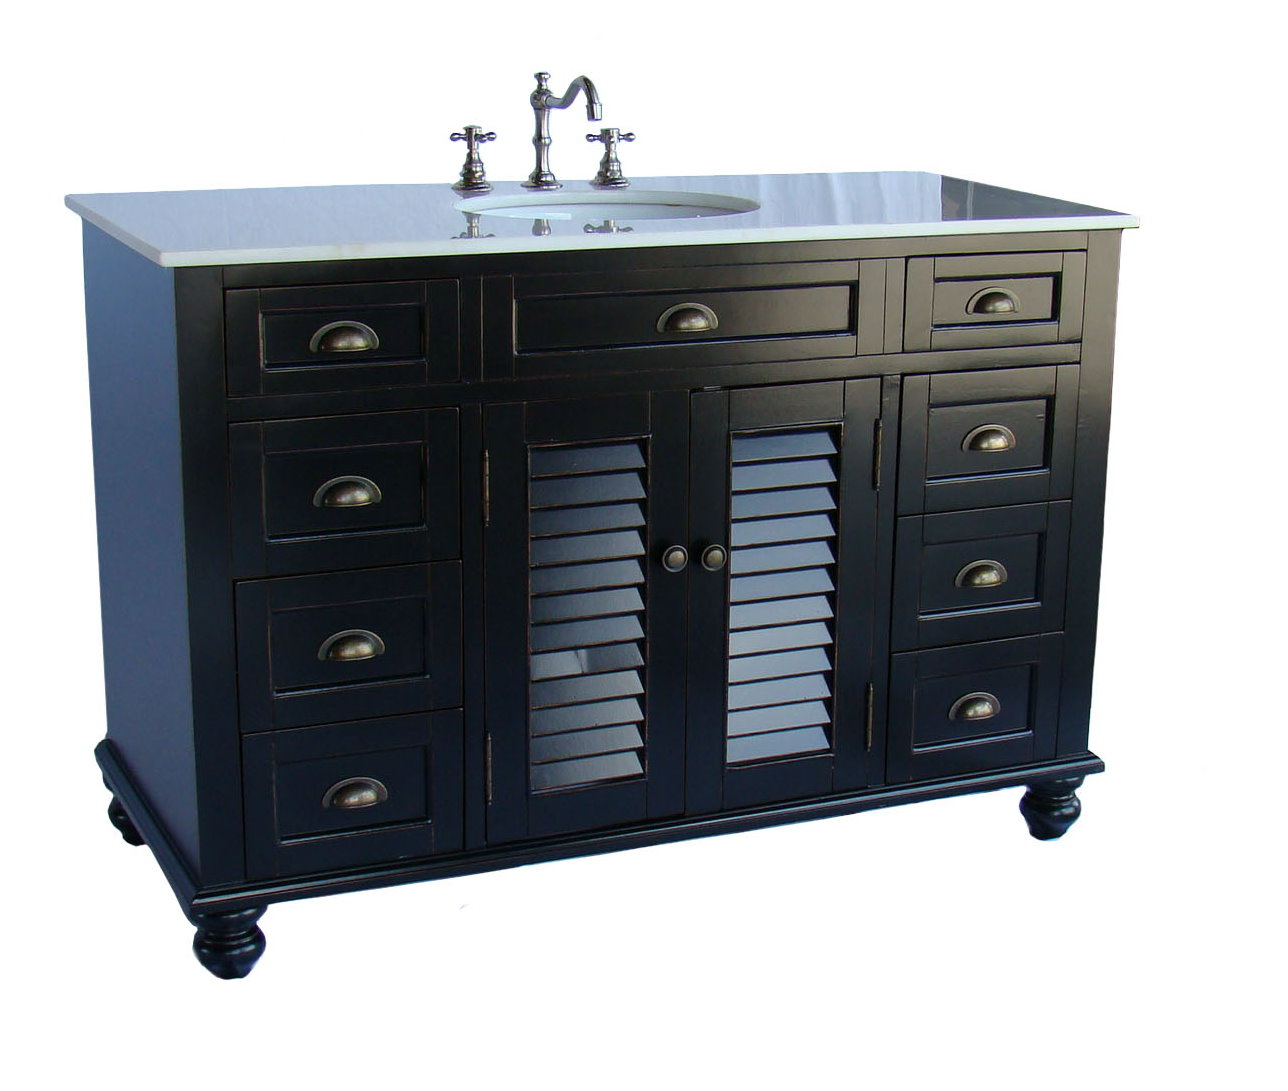 "48"" Cottage Style Single Sink Bathroom Vanity with White Marble Countertop"